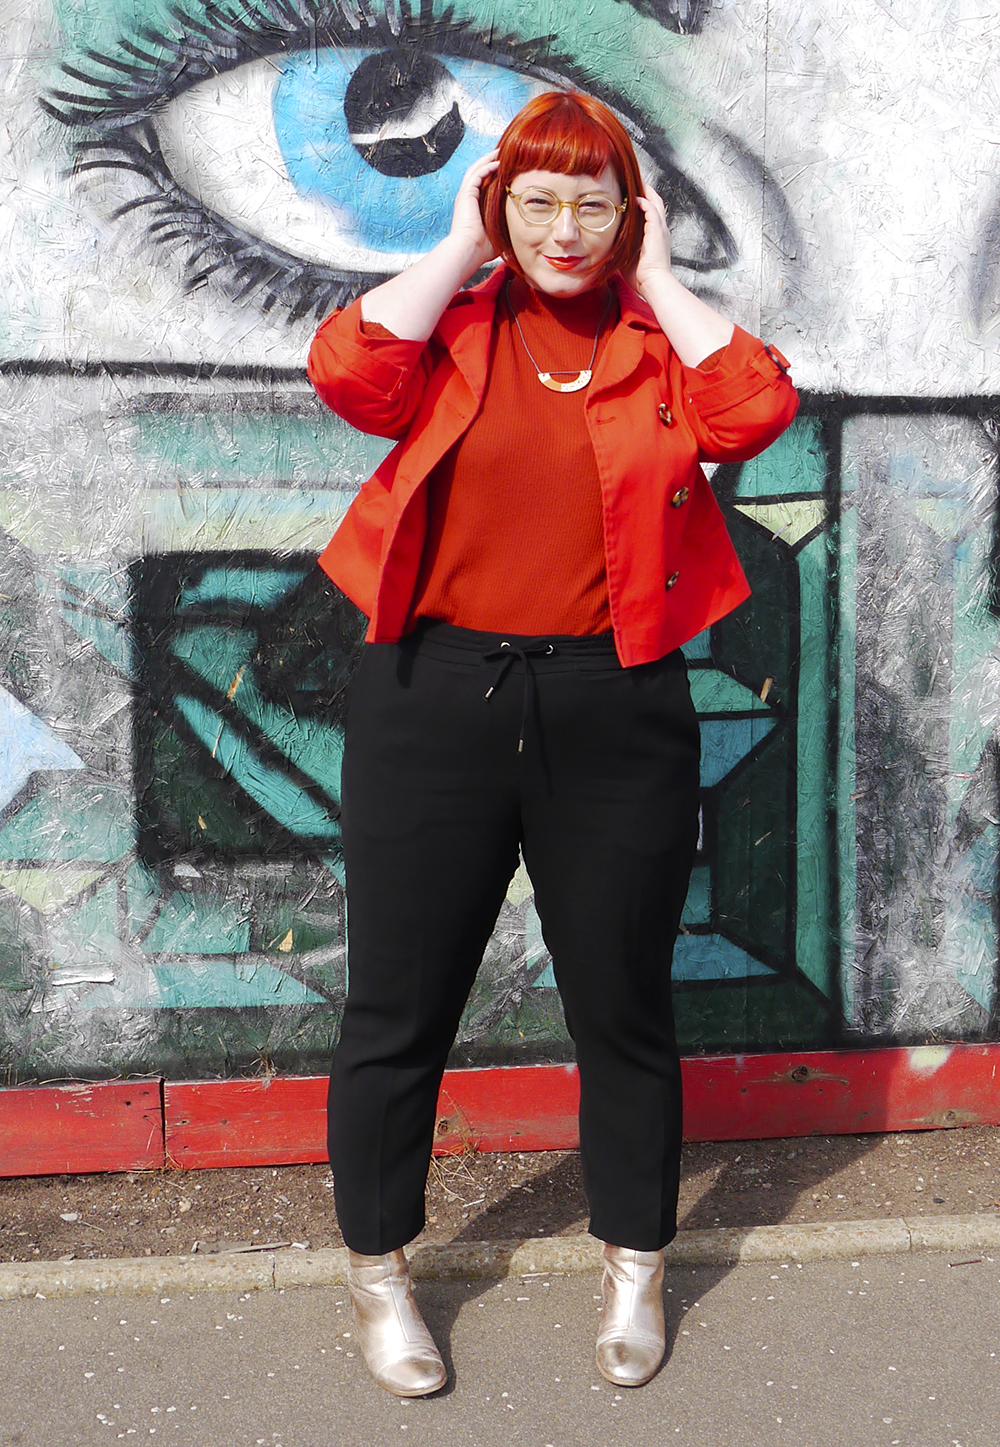 Colourful transitional summer autumn outfit worn by Scottish blogger with red hair